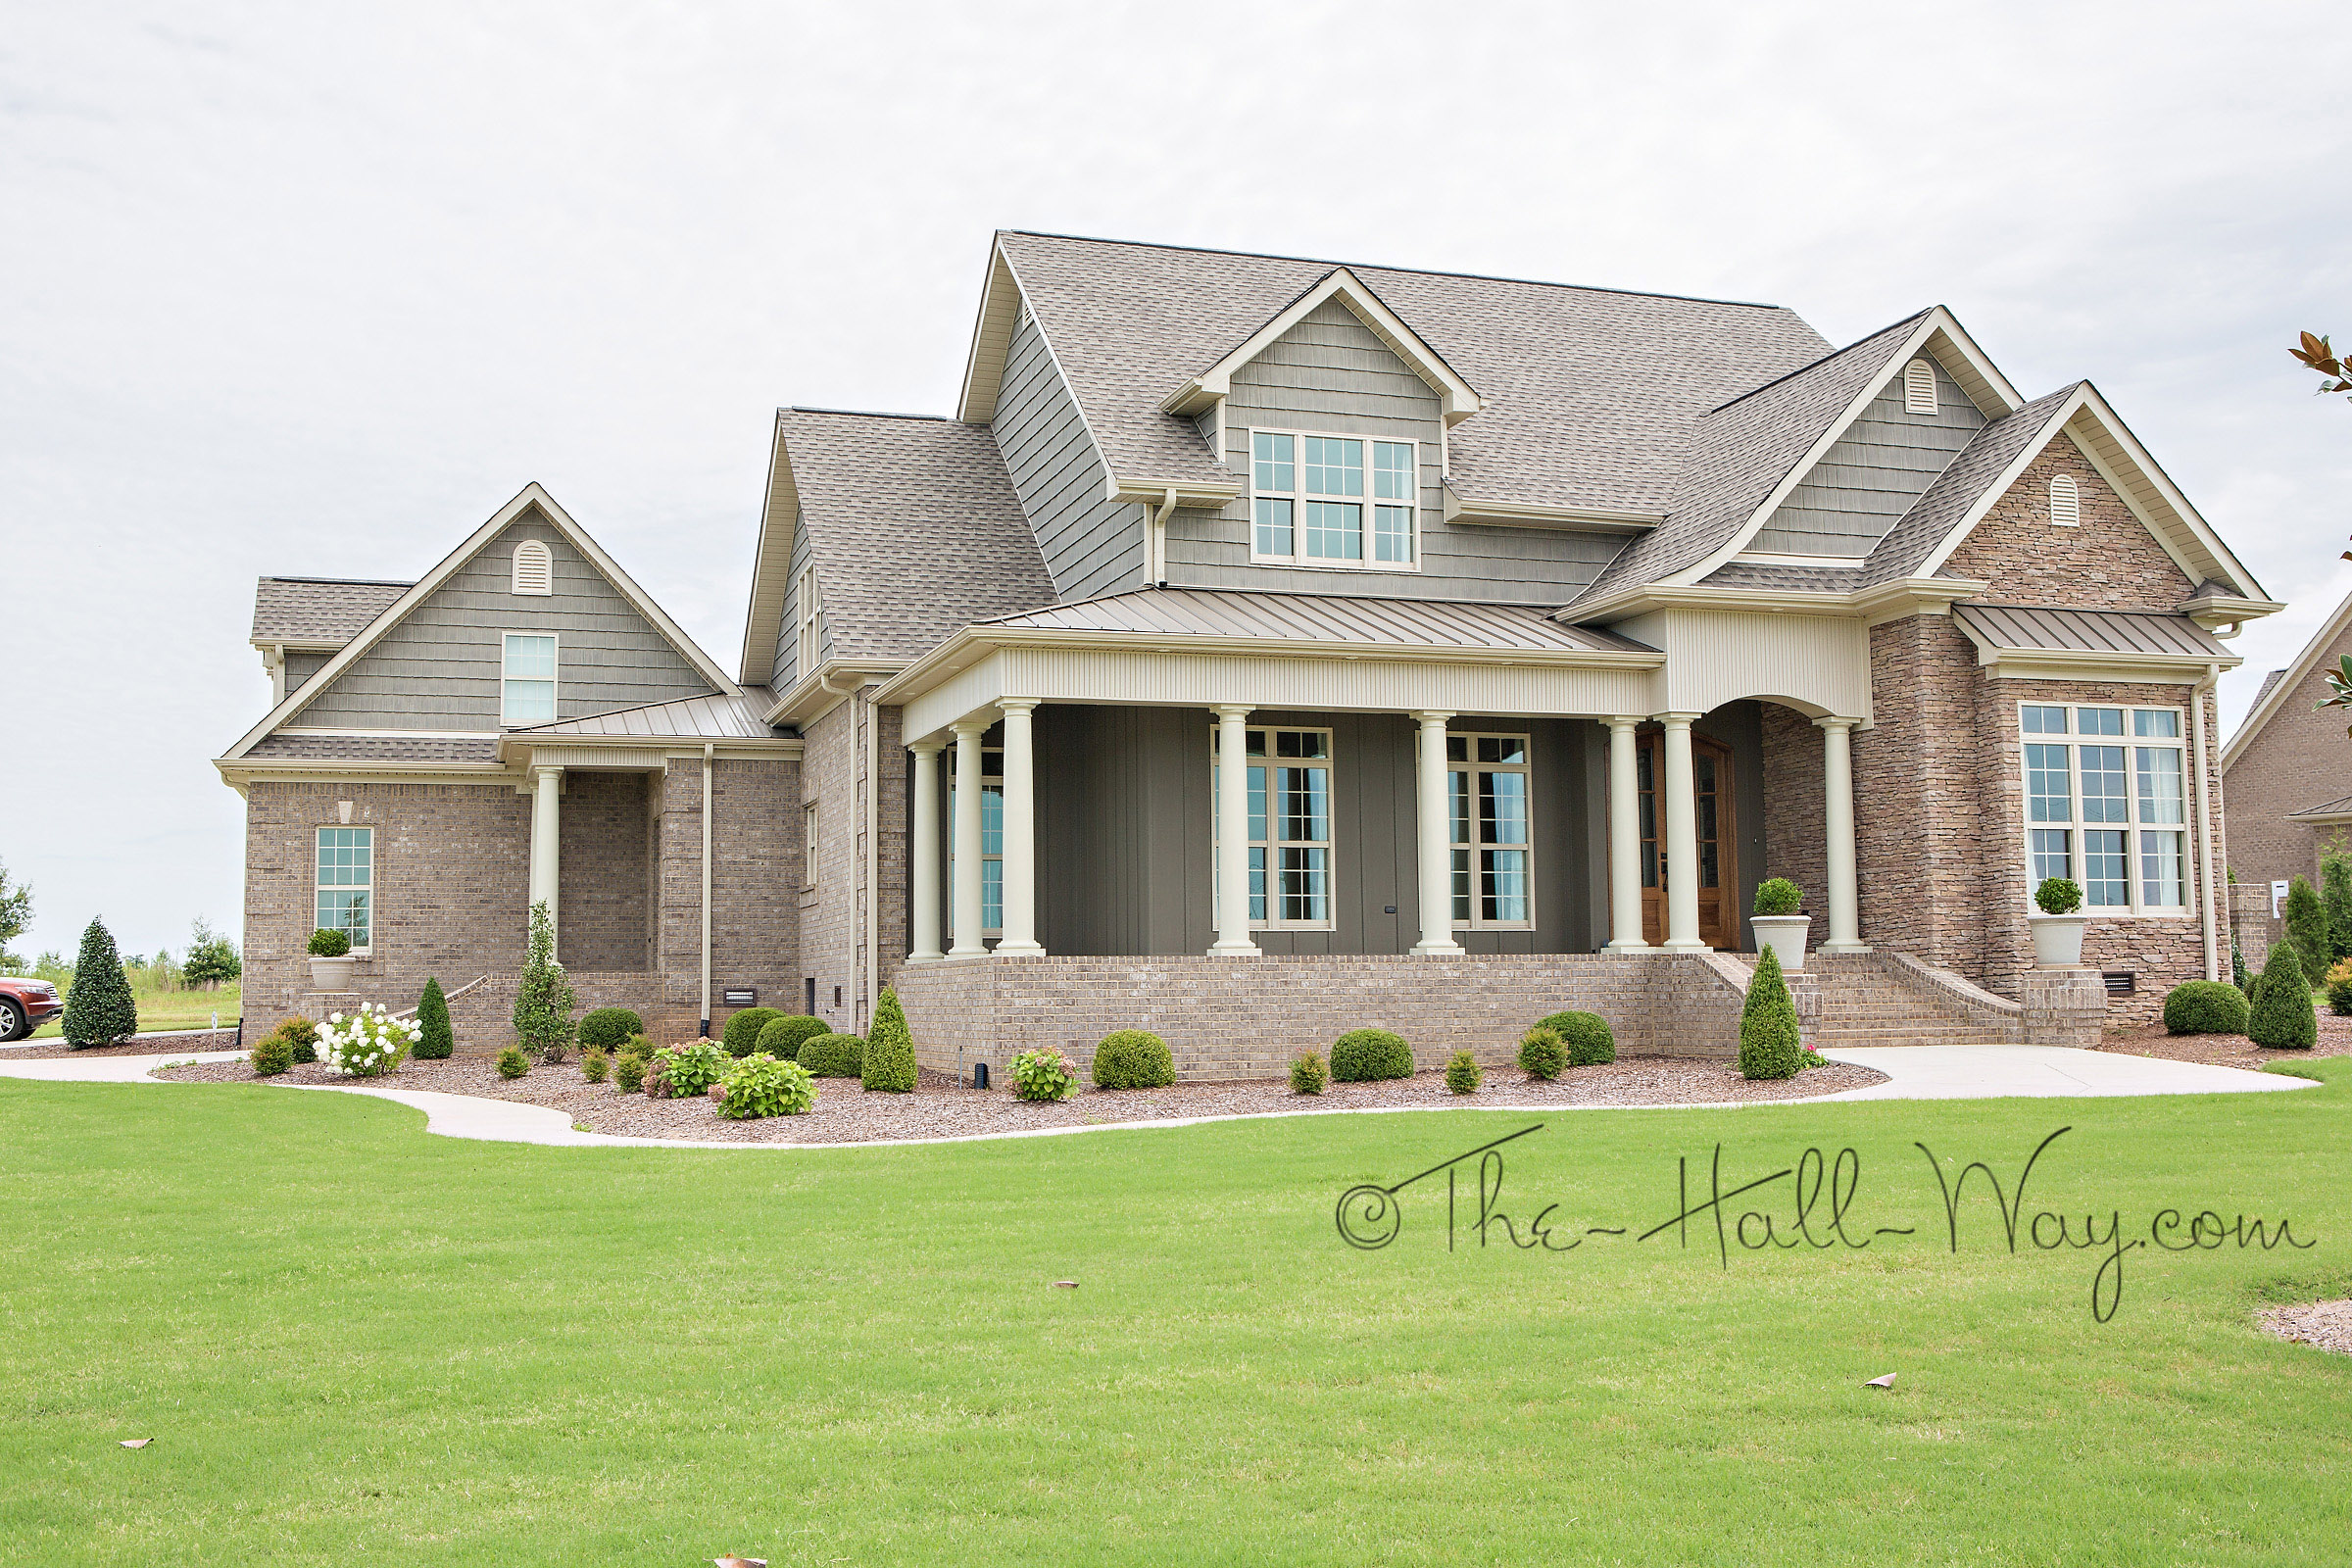 design elegant house designs and ideas small house plans the house style house plans southern living